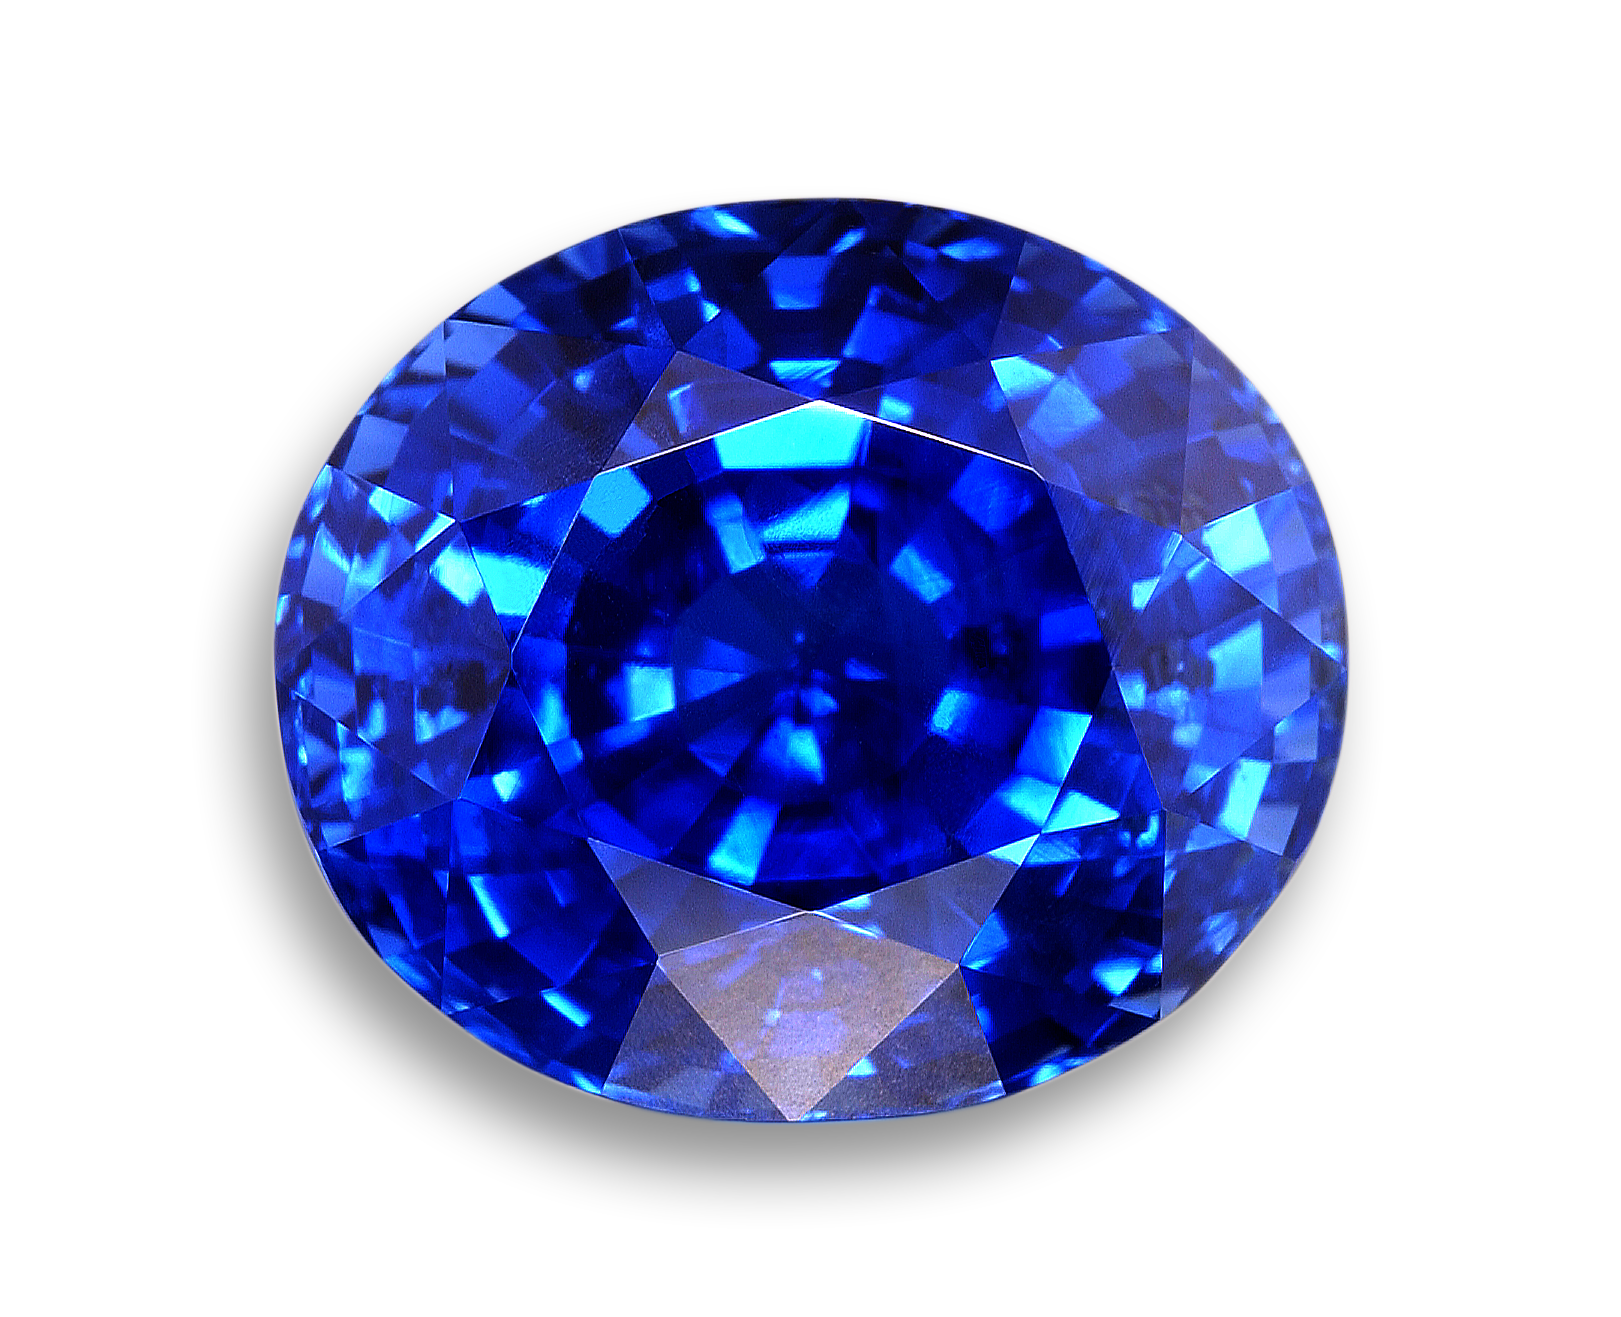 Gemstone Png - Image of Faceted Blue Sapphire